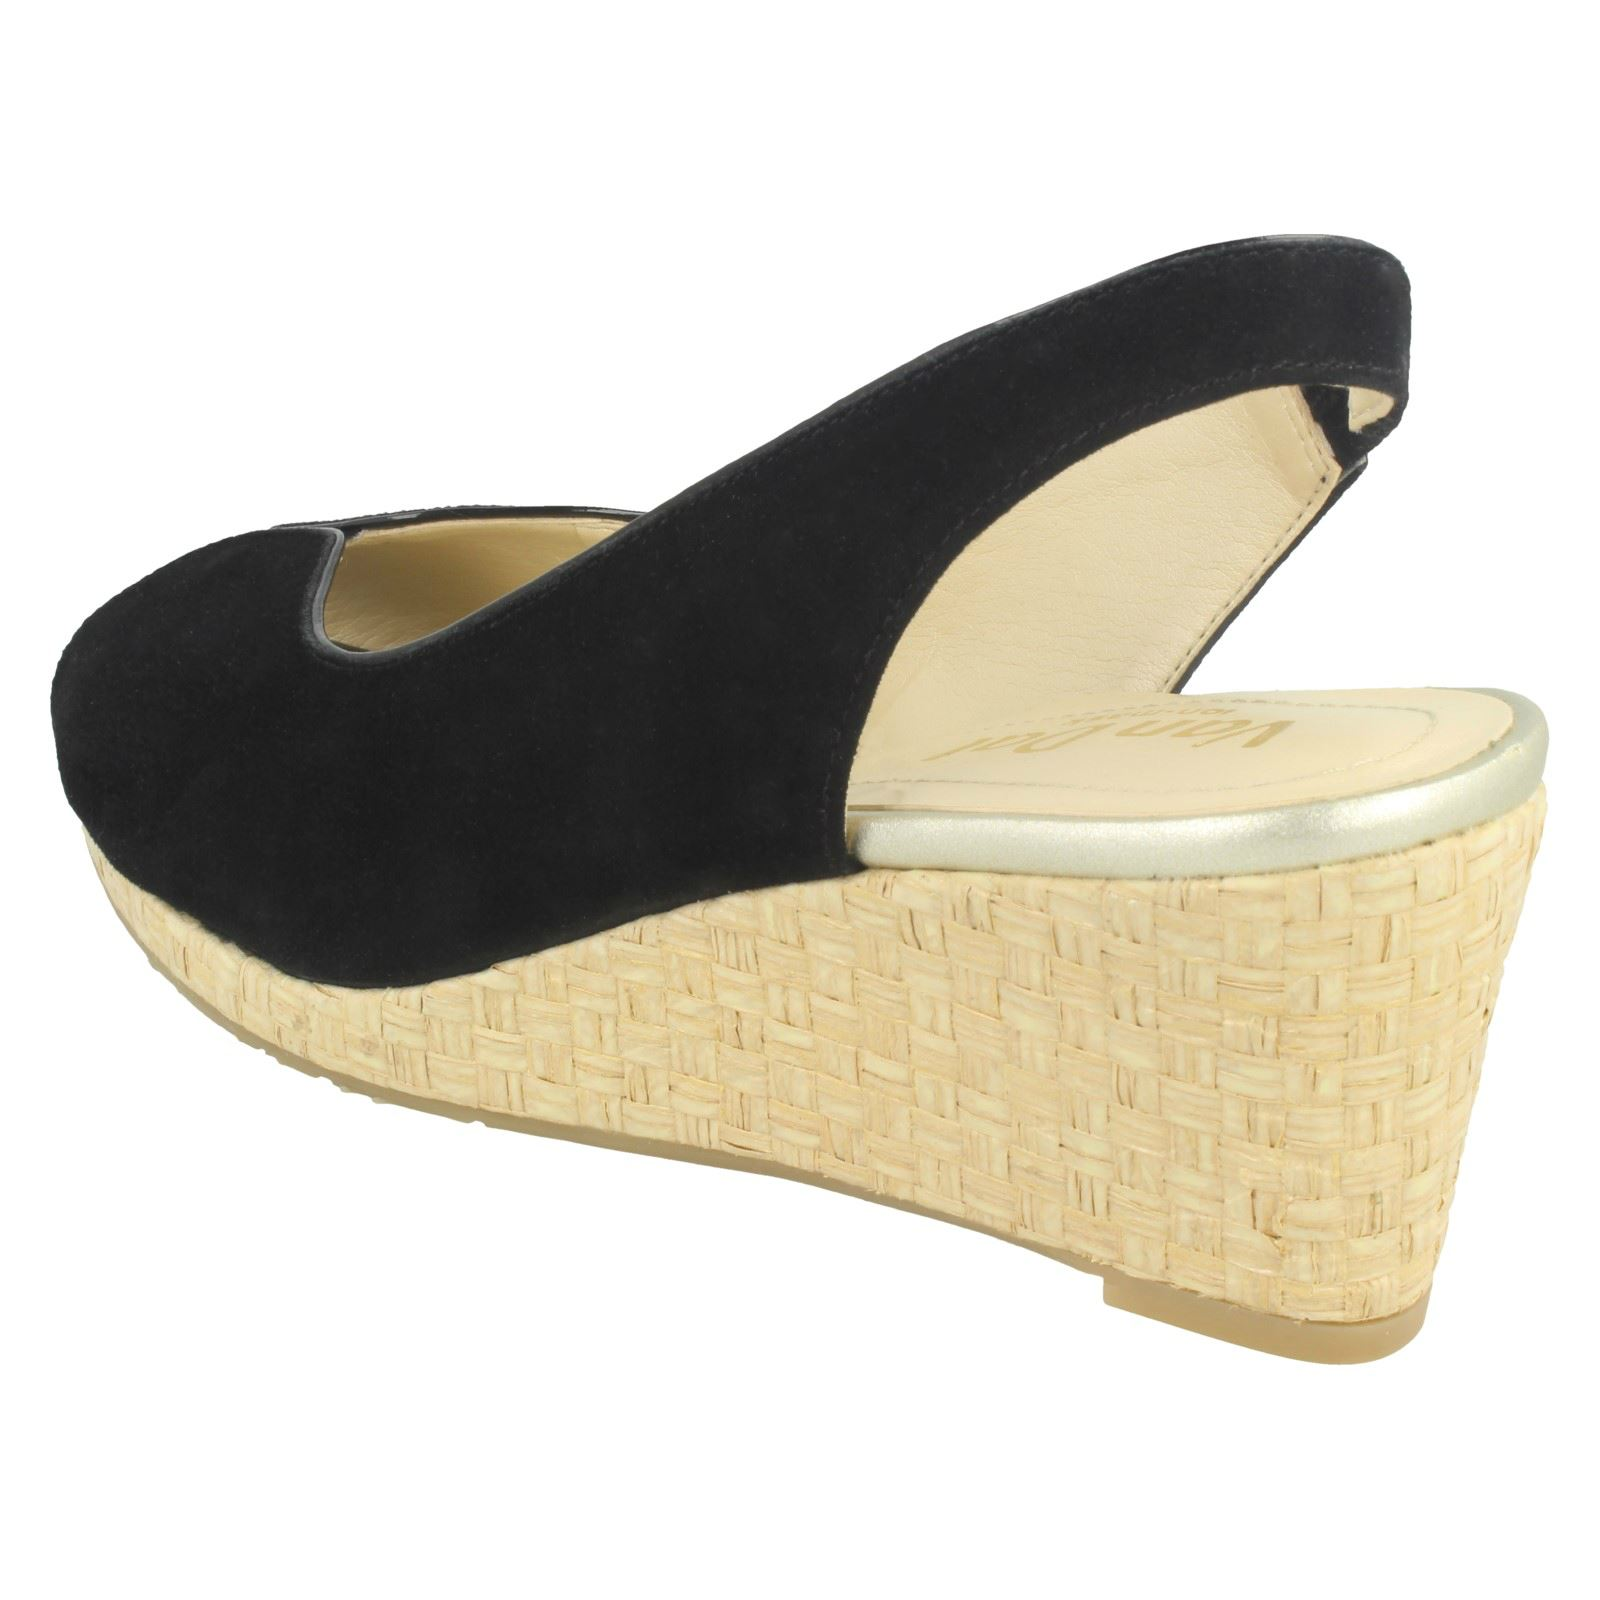 Ladies-Van-Dal-Leather-Wedge-Sandal-With-Woven-Detail-Avalon thumbnail 6